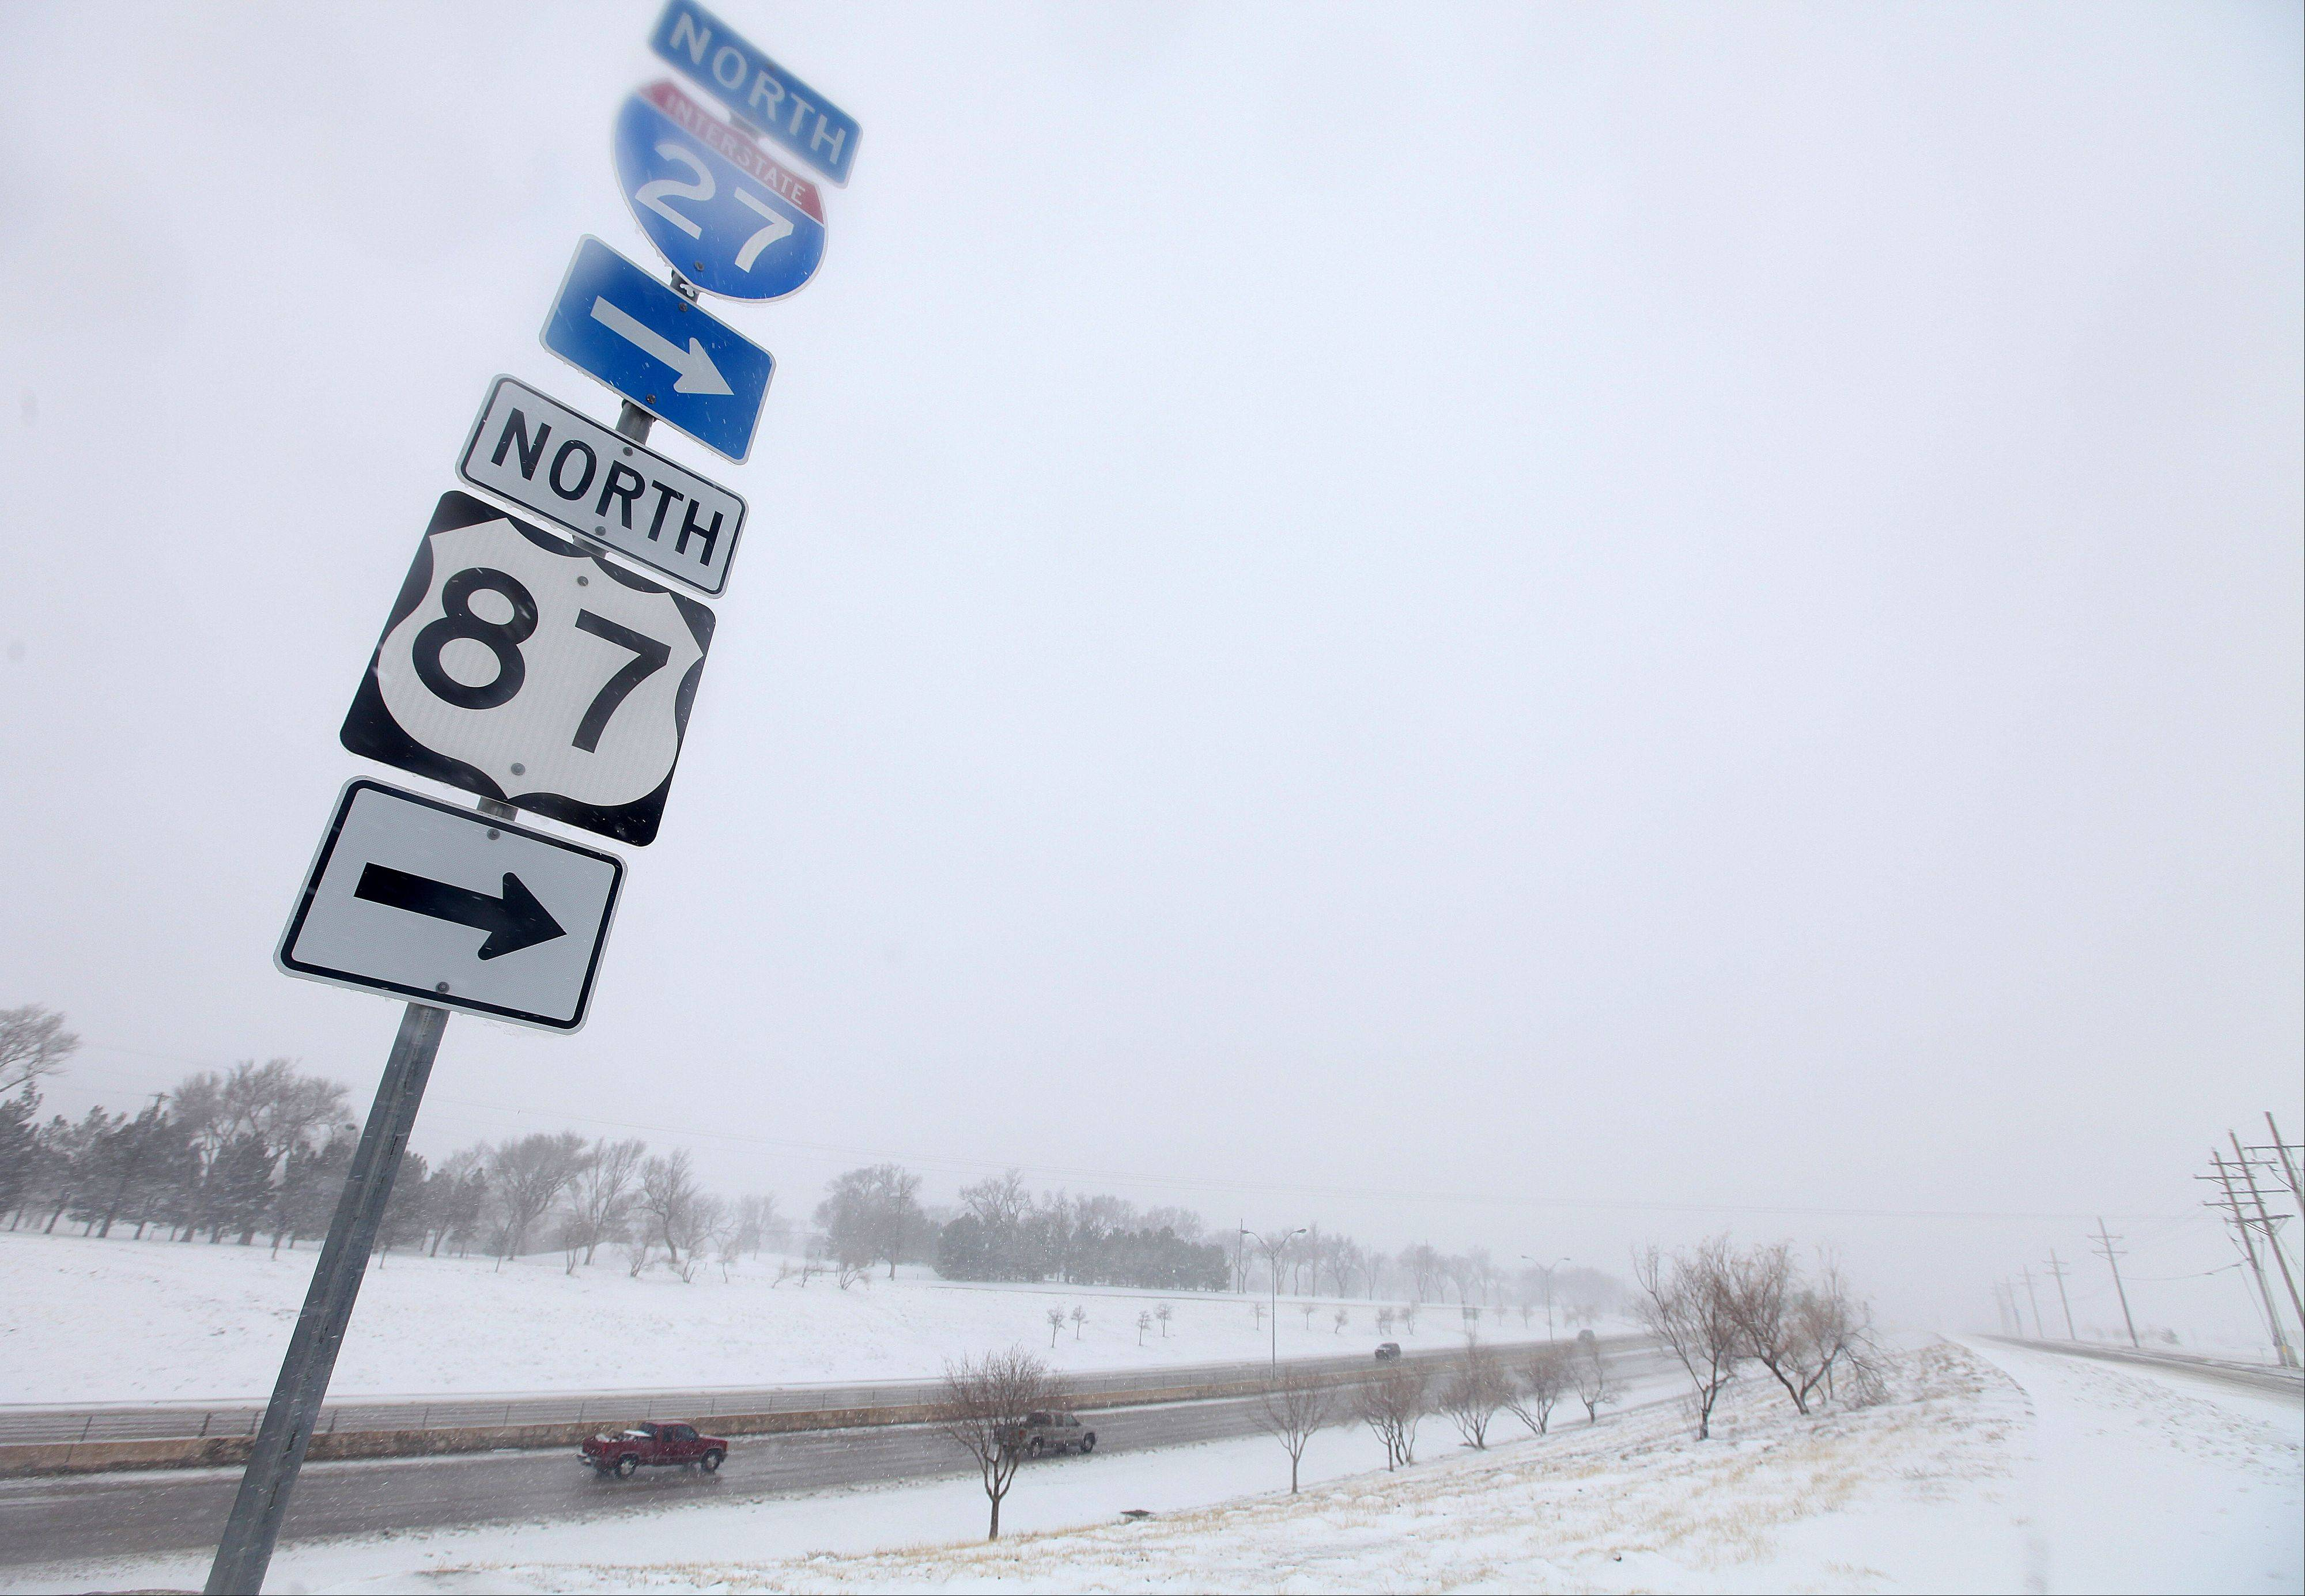 Vehicles navigate along Interstate 27 during blizzard conditions in Lubbock, Texas, Monday. State troopers are unable to respond to calls for assistance and National Guard units are mobilizing as a winter storm blankets the central Plains with a foot of snow in some places. Roads were closed Monday throughout West Texas and the Panhandle.